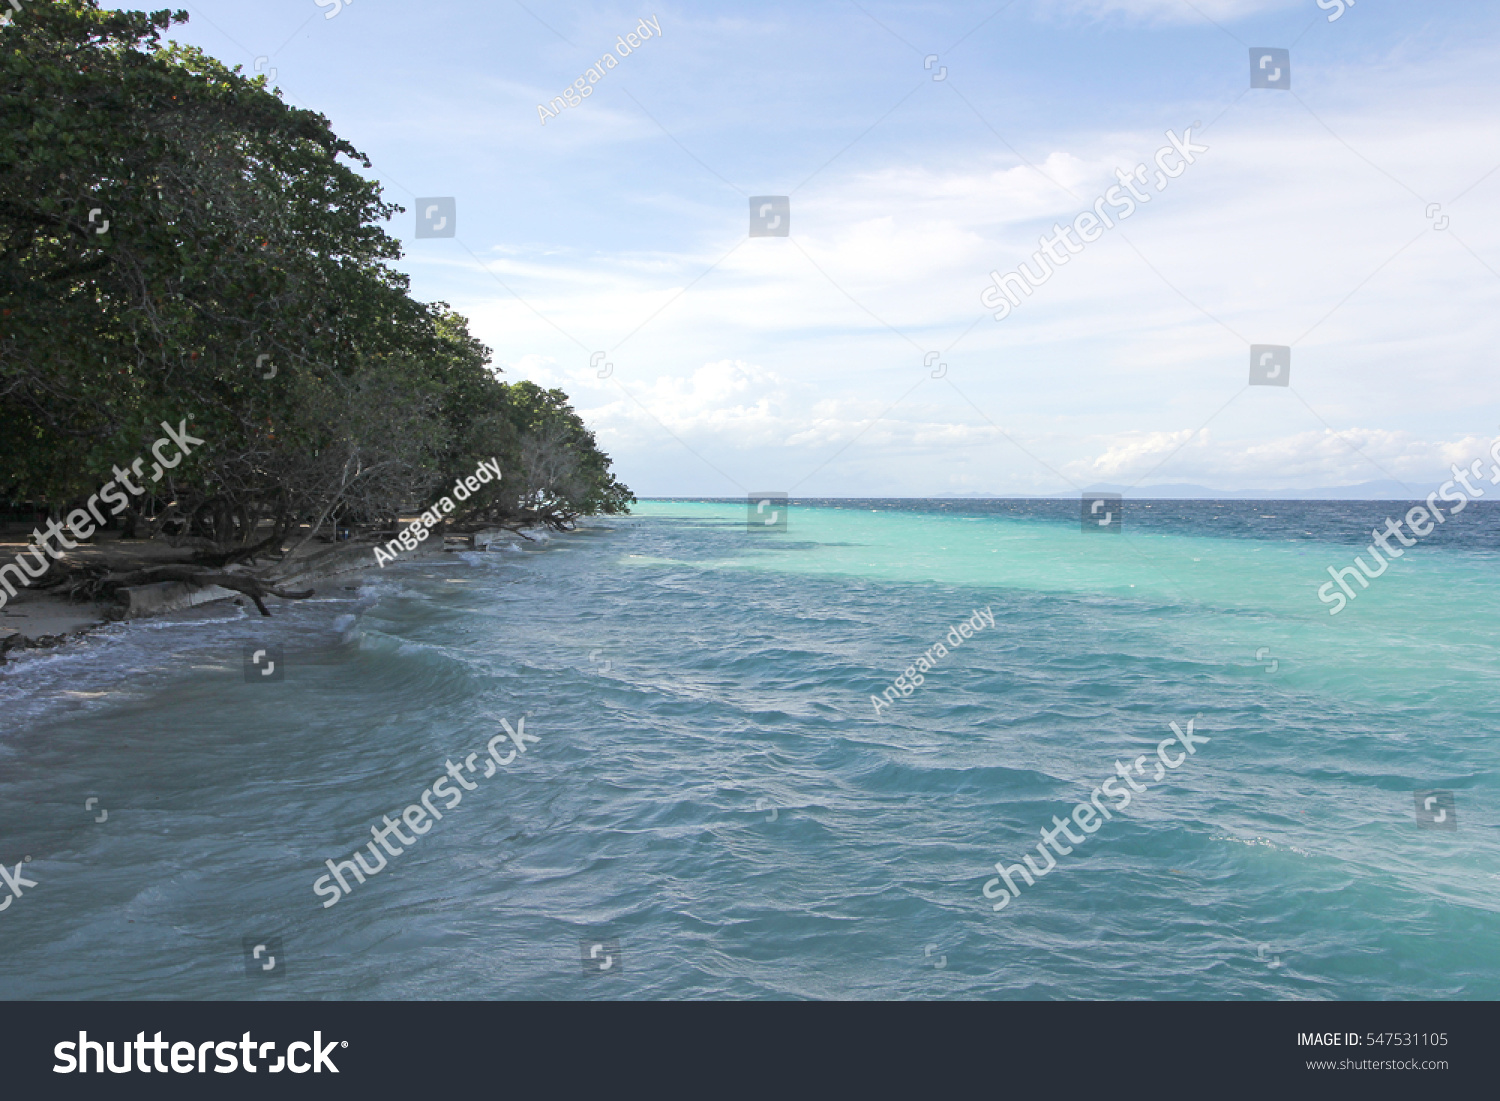 Tourism Destinations Excellence Coastal Tourism Destinations Indonesia Stock Photo